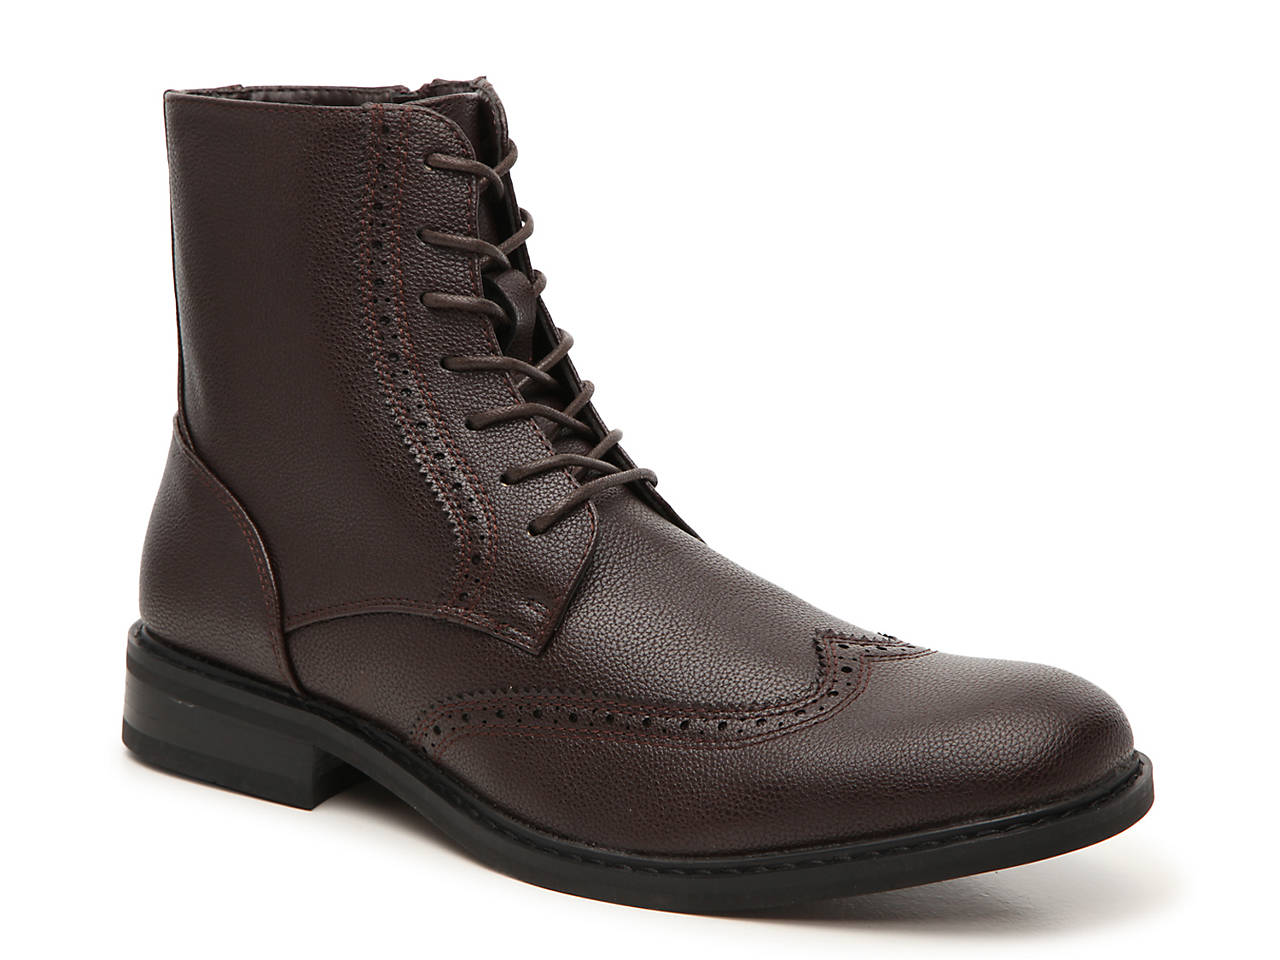 Buzzer Wing Tip Boot by Unlisted